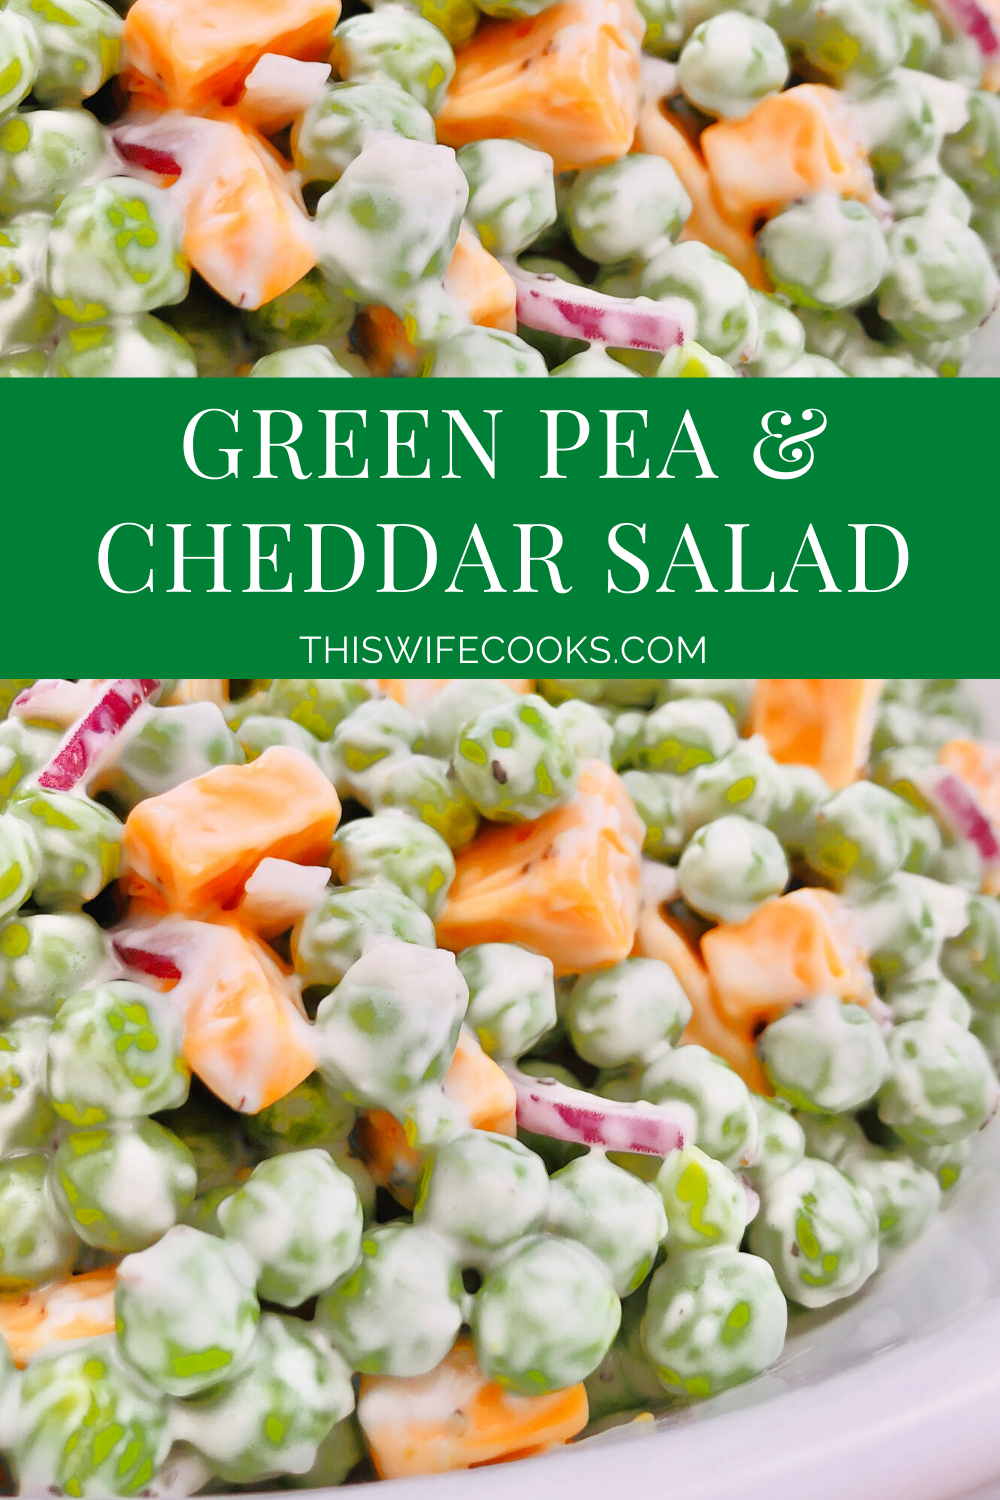 Green Pea and Cheddar Salad - A classic side dish made with only a handful of simple plant-based ingredients! via @thiswifecooks